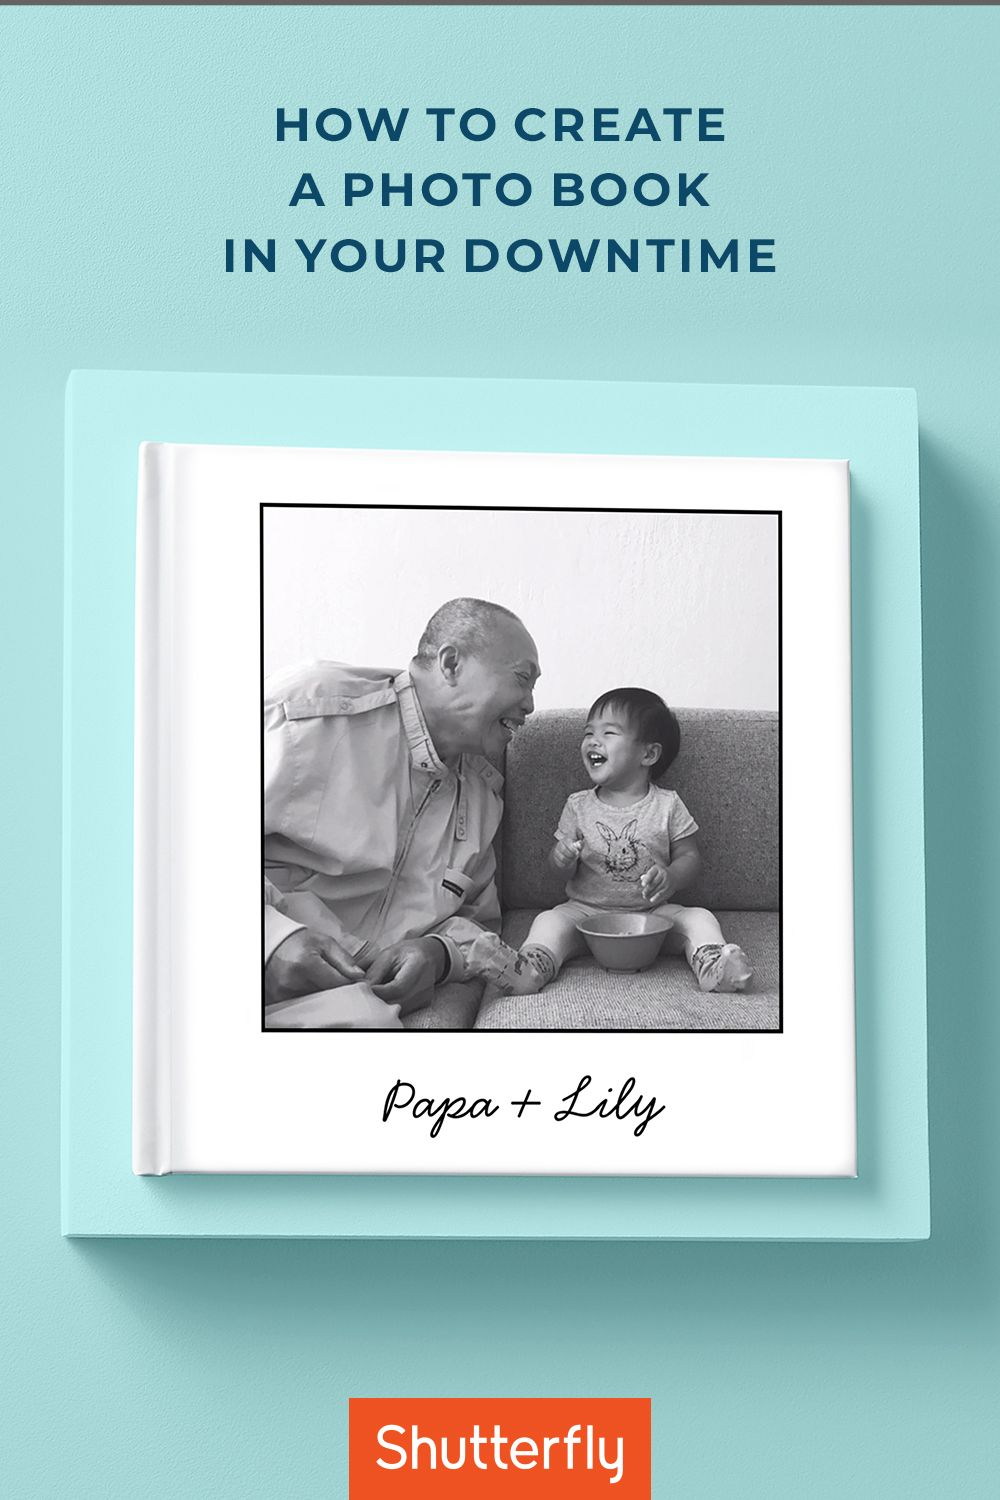 60494e2ba9dd094b5c50f1c762b69e63 - How Long Does It Take To Get Your Shutterfly Book